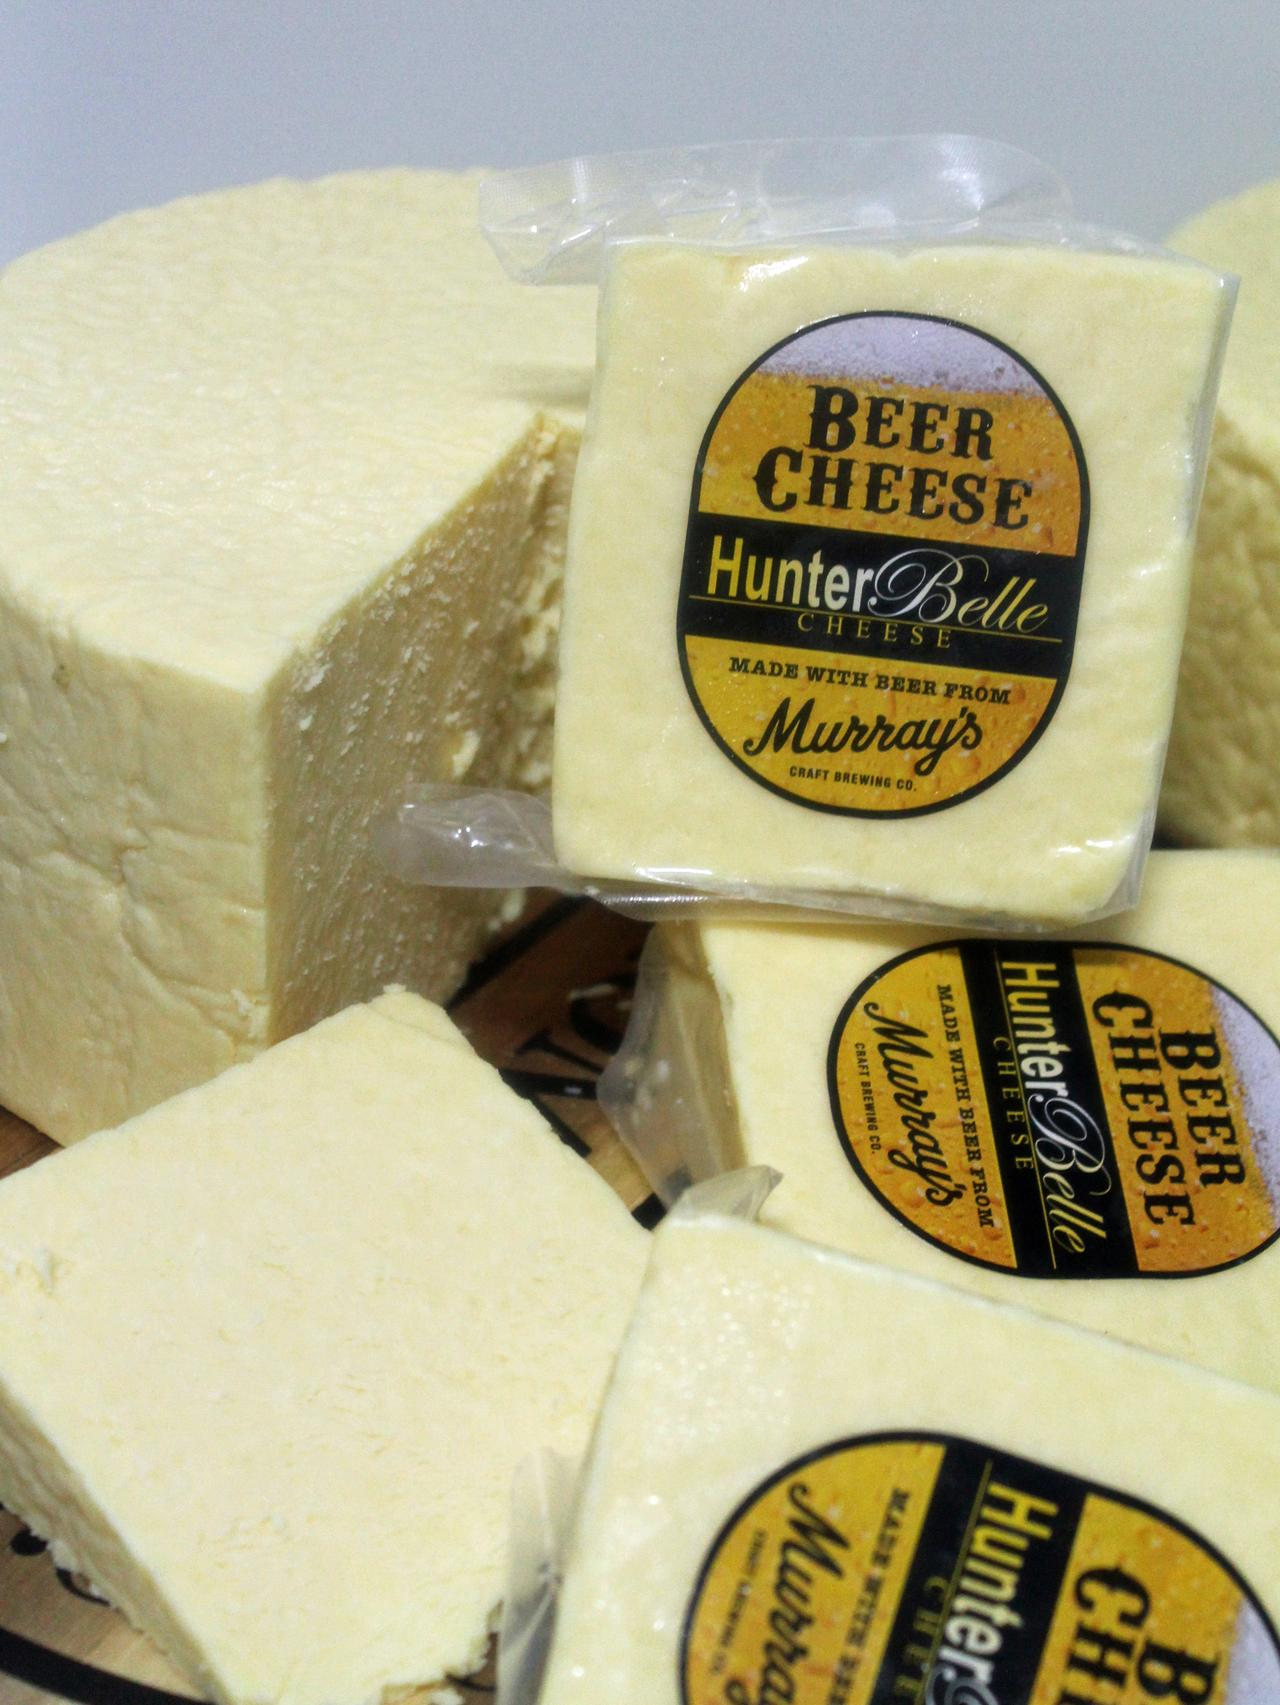 Beer cheddar, one of the popular favourites at Hunter Belle Cheese.